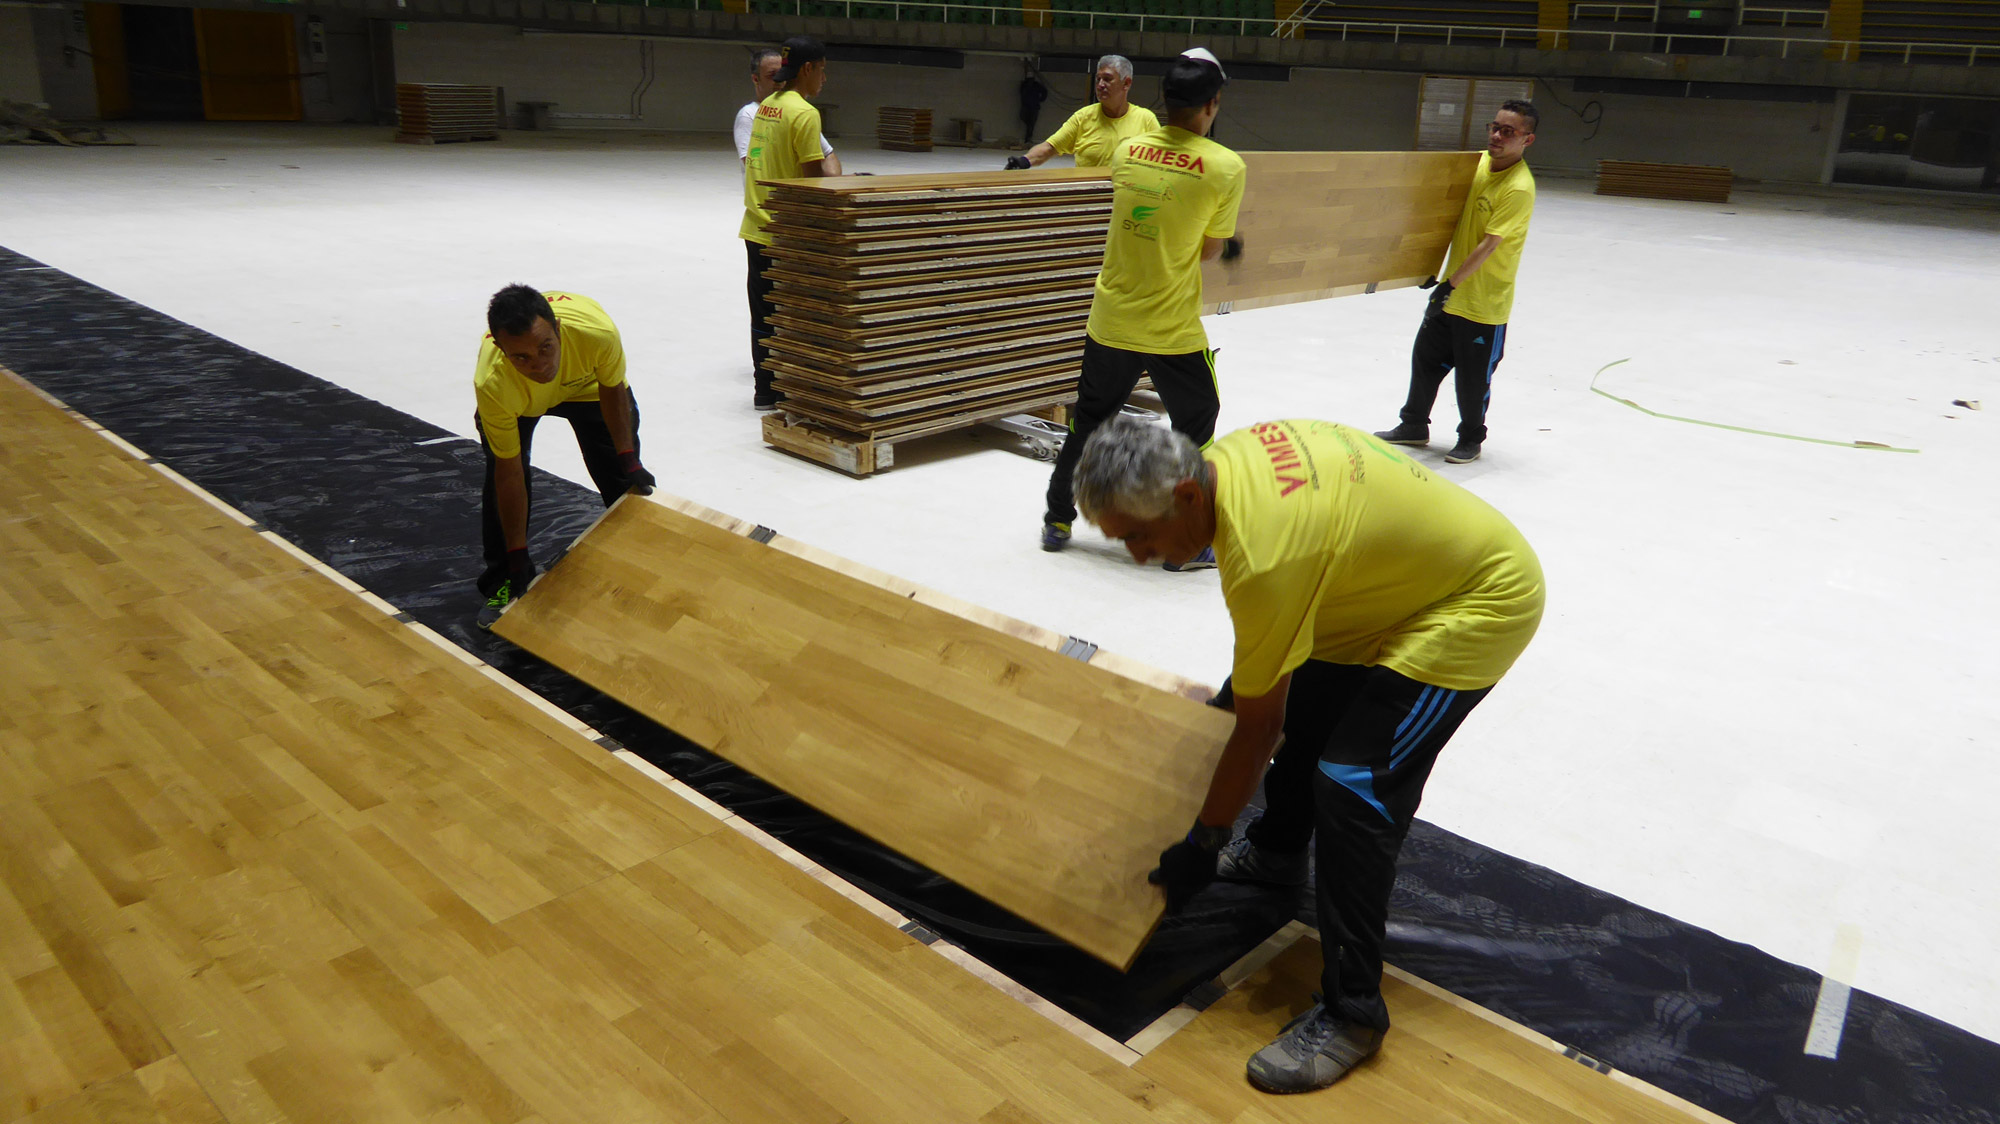 Removable sports flooring easy to install - FIFA Futsal World Cup 2016 Colombia